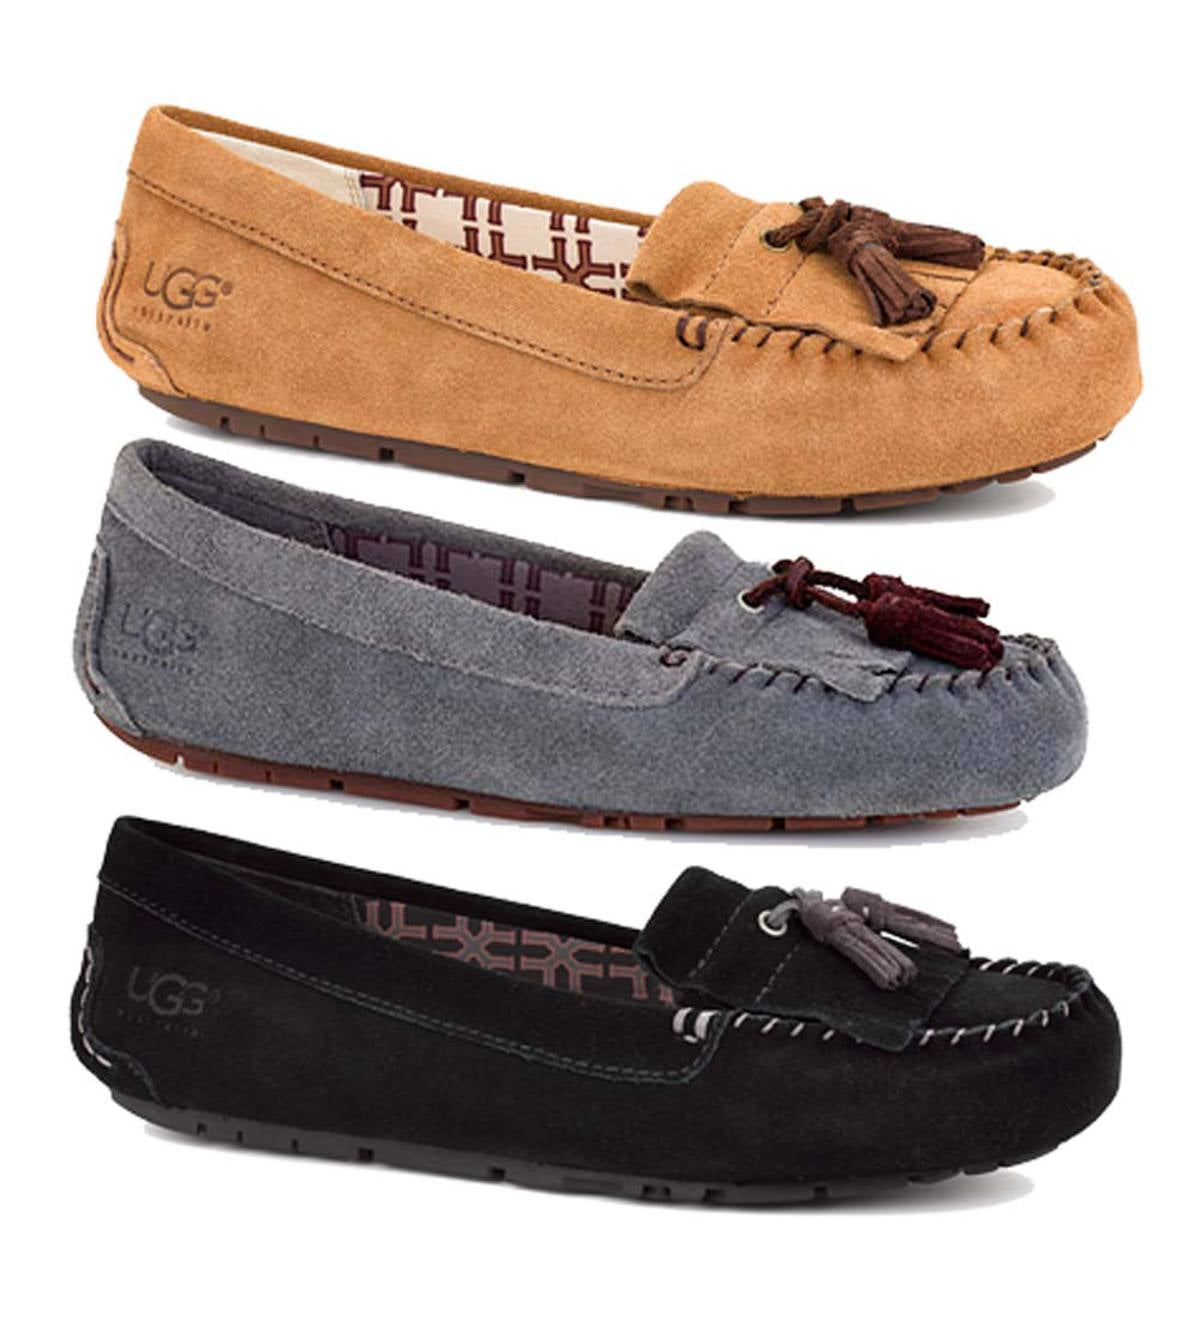 30897546fac UGG Australia Women s Lizzy Moccasin Slippers